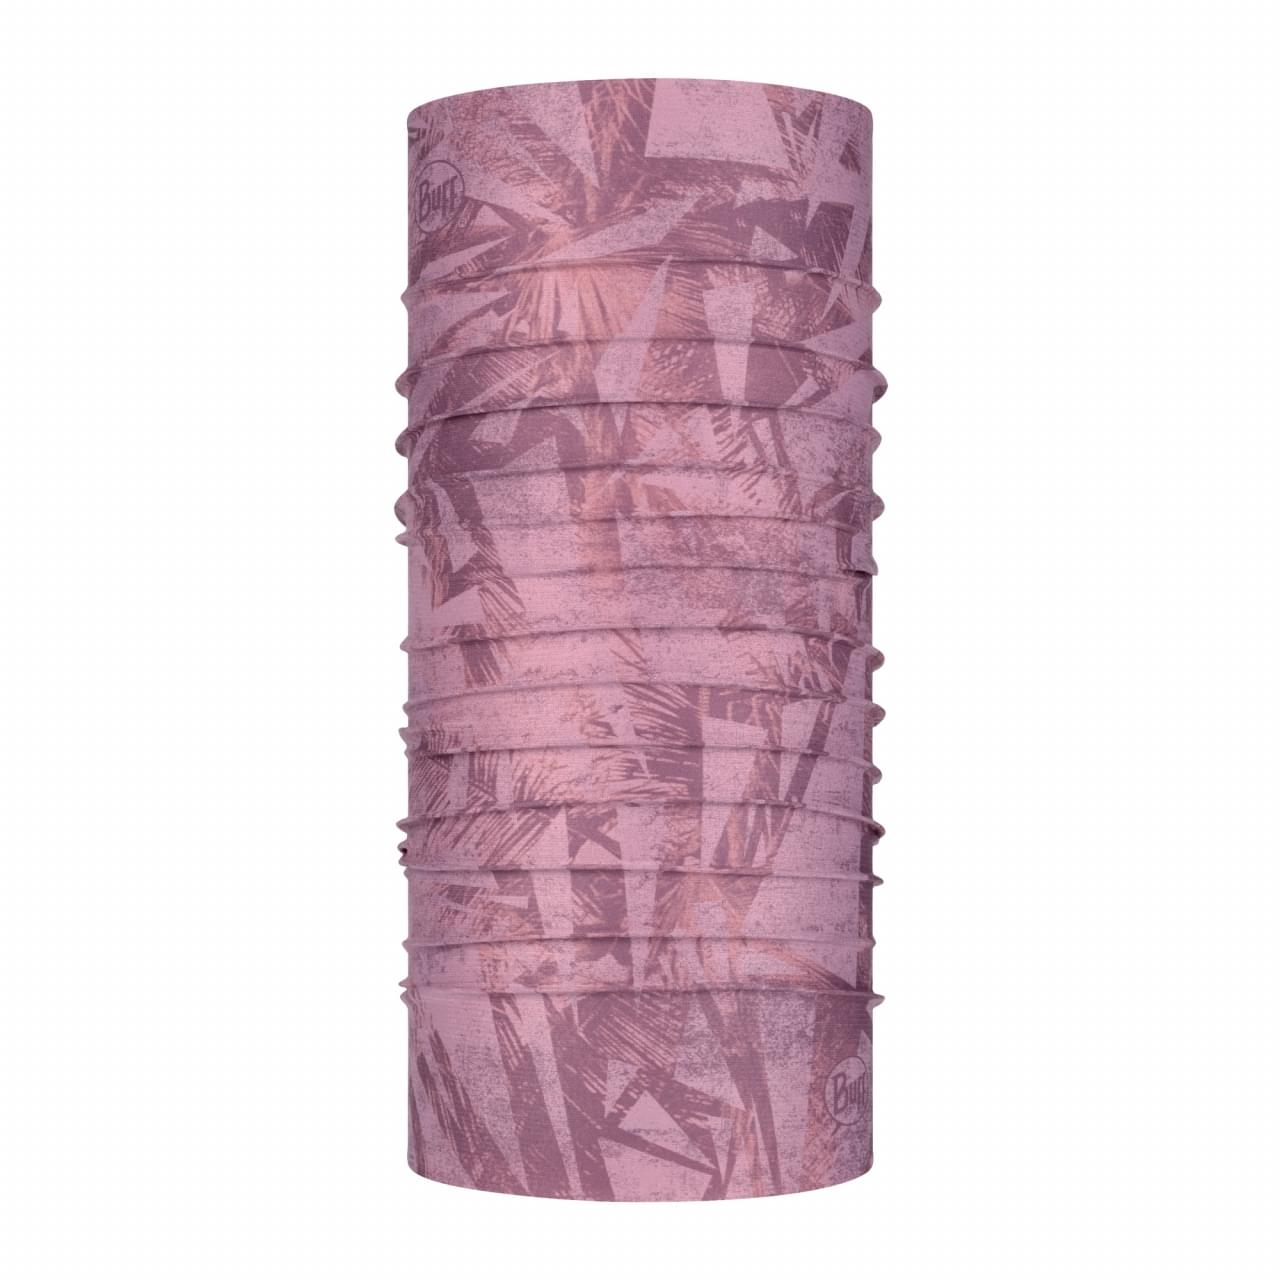 Buff CoolNet UV+ Insect Shield Roze